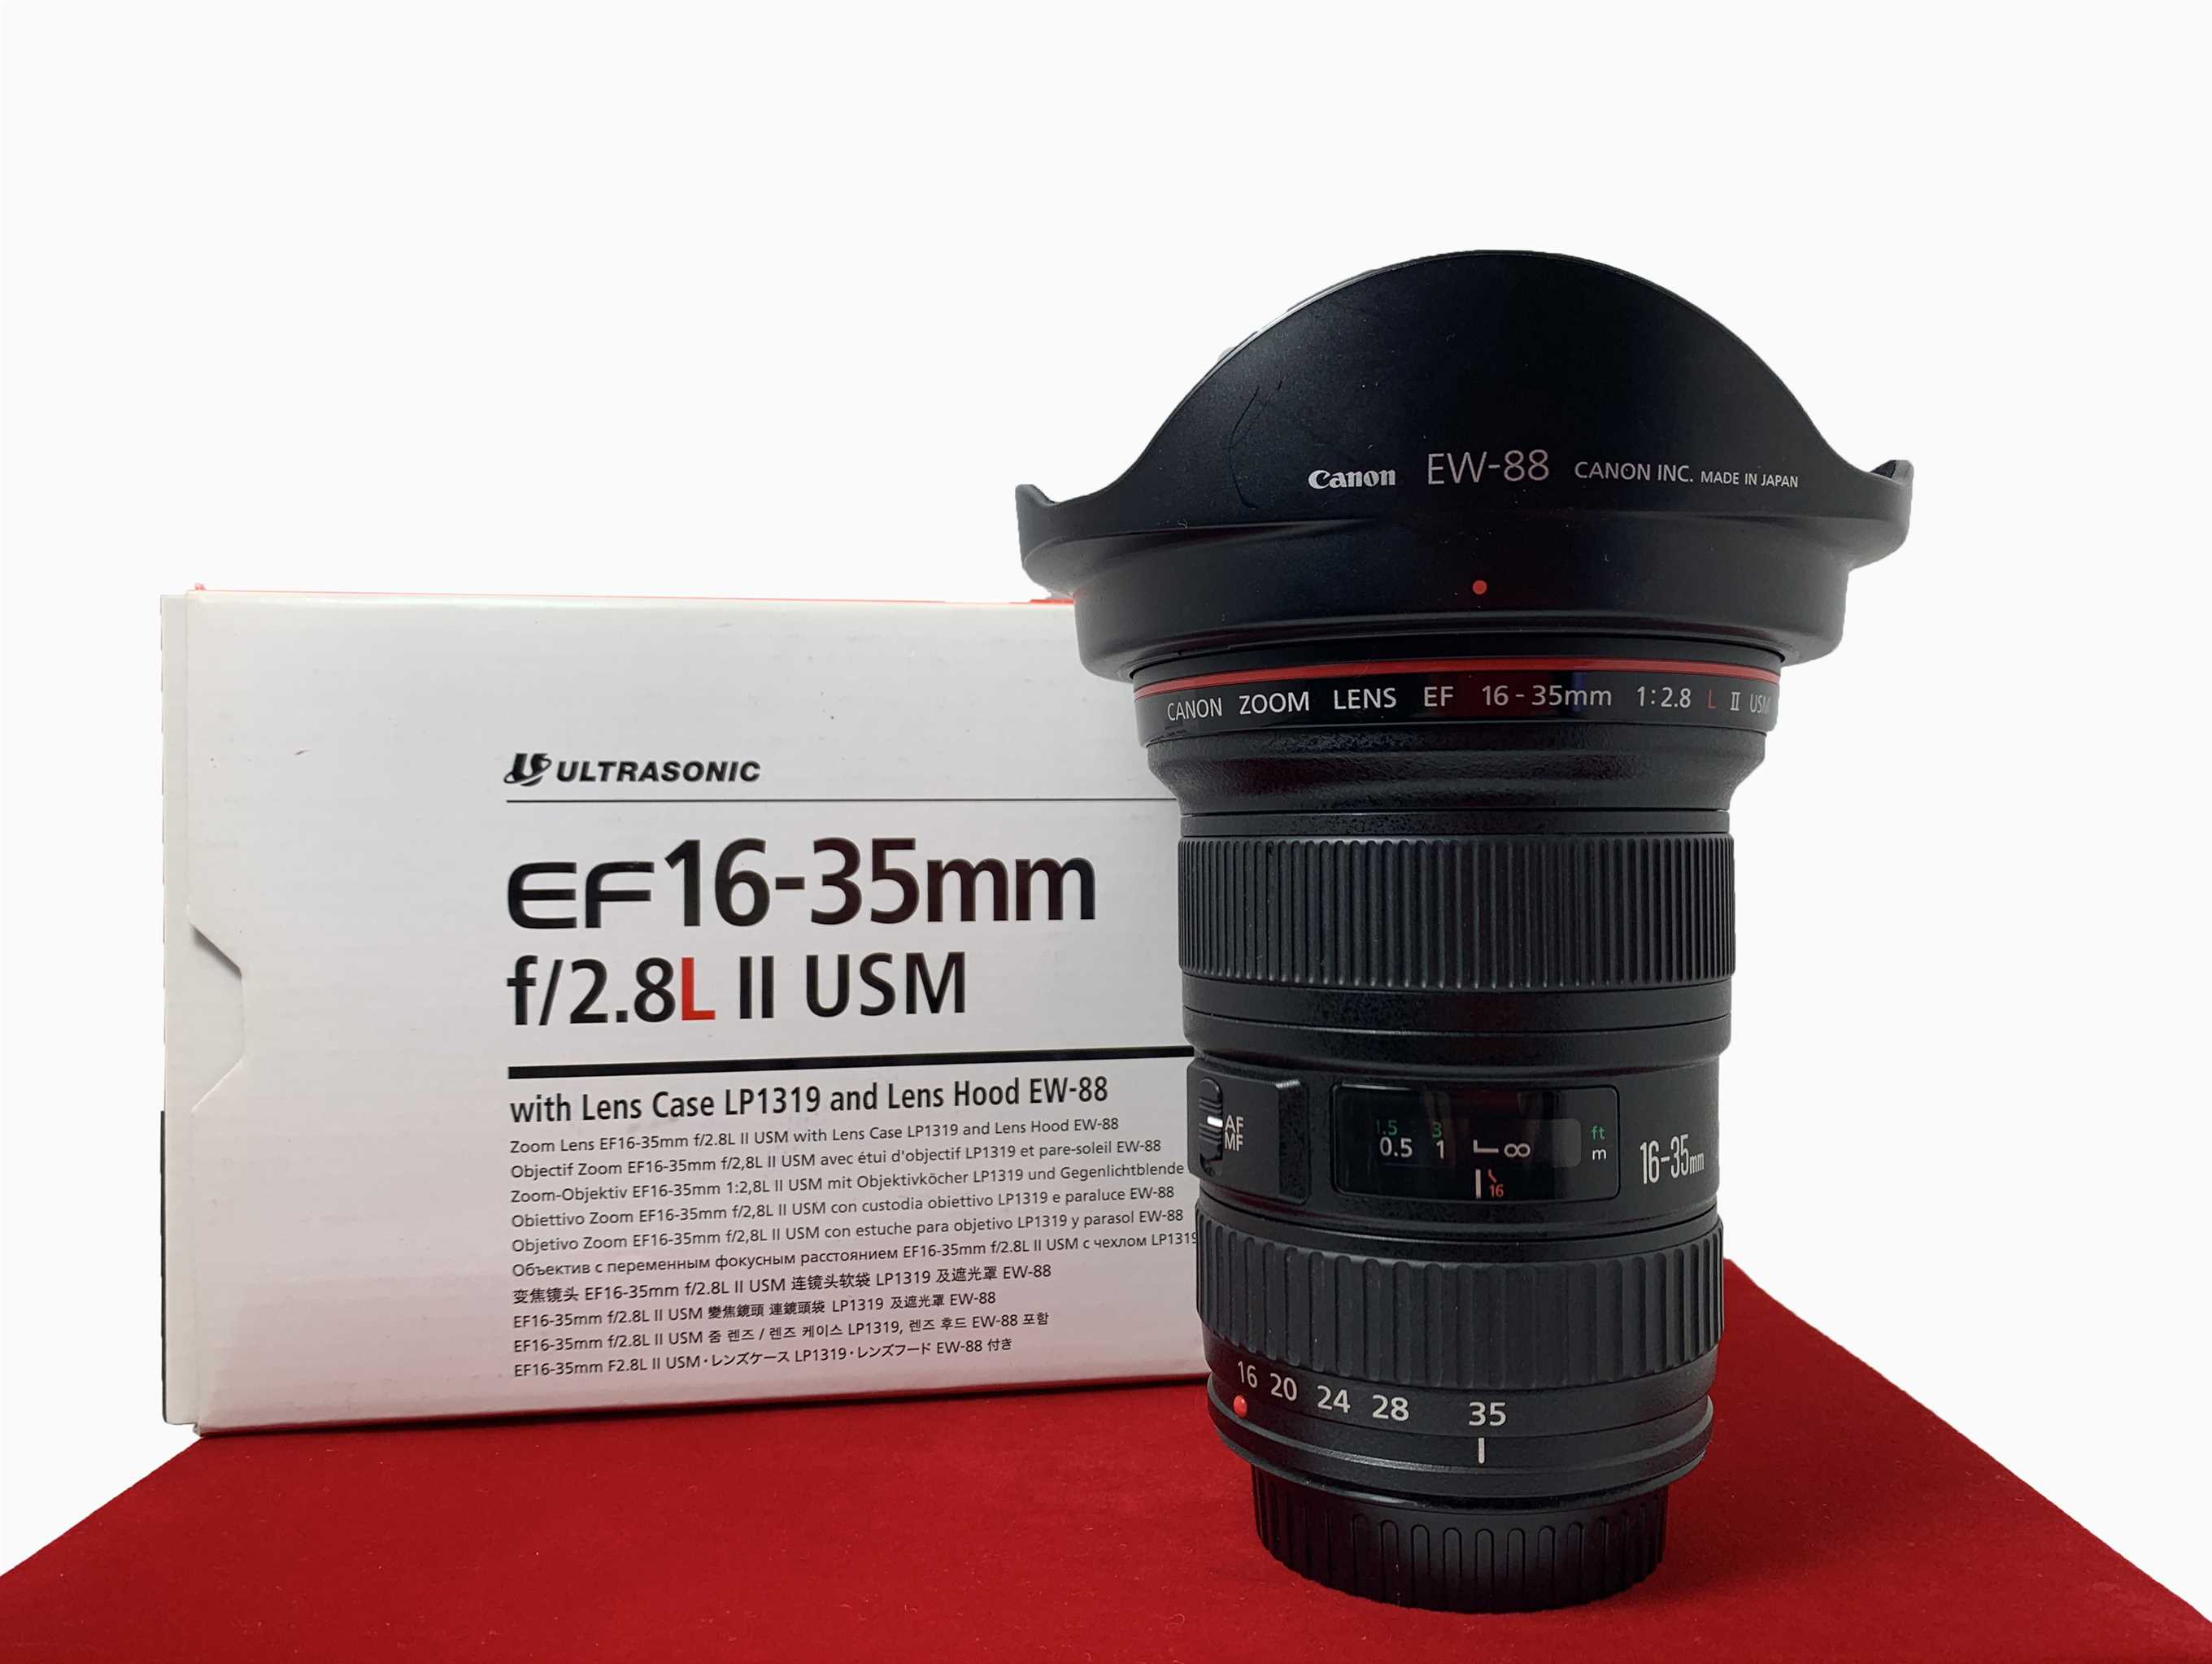 [USED-PJ33] CANON 16-35MM F2.8 L II EF USM Lens, 95% Like New Condition (S/N:4836029)